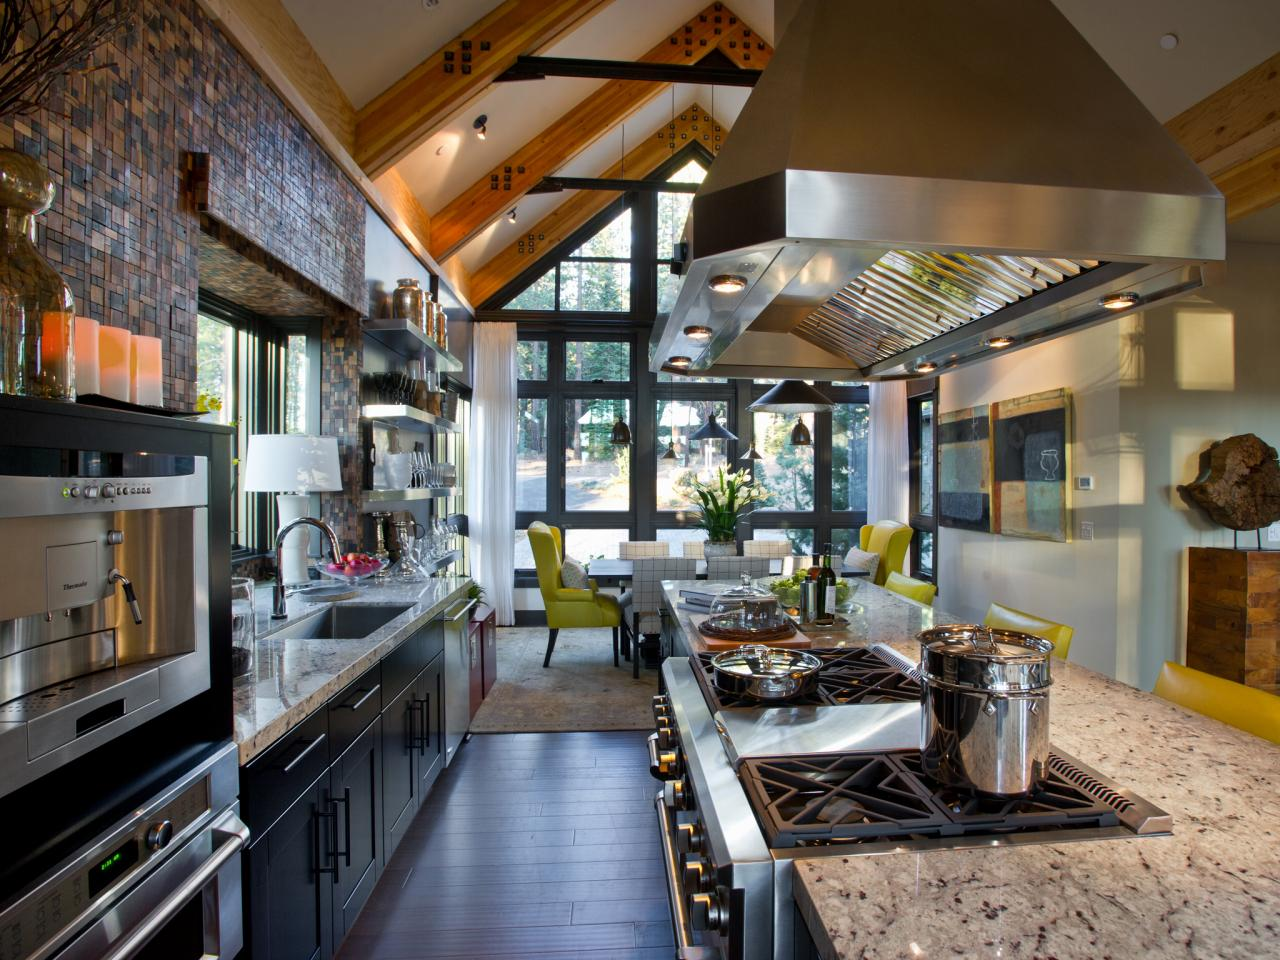 Galley Kitchen With Vaulted Ceiling And Stainless Range Hood The Kitchen Flows Straight Into The